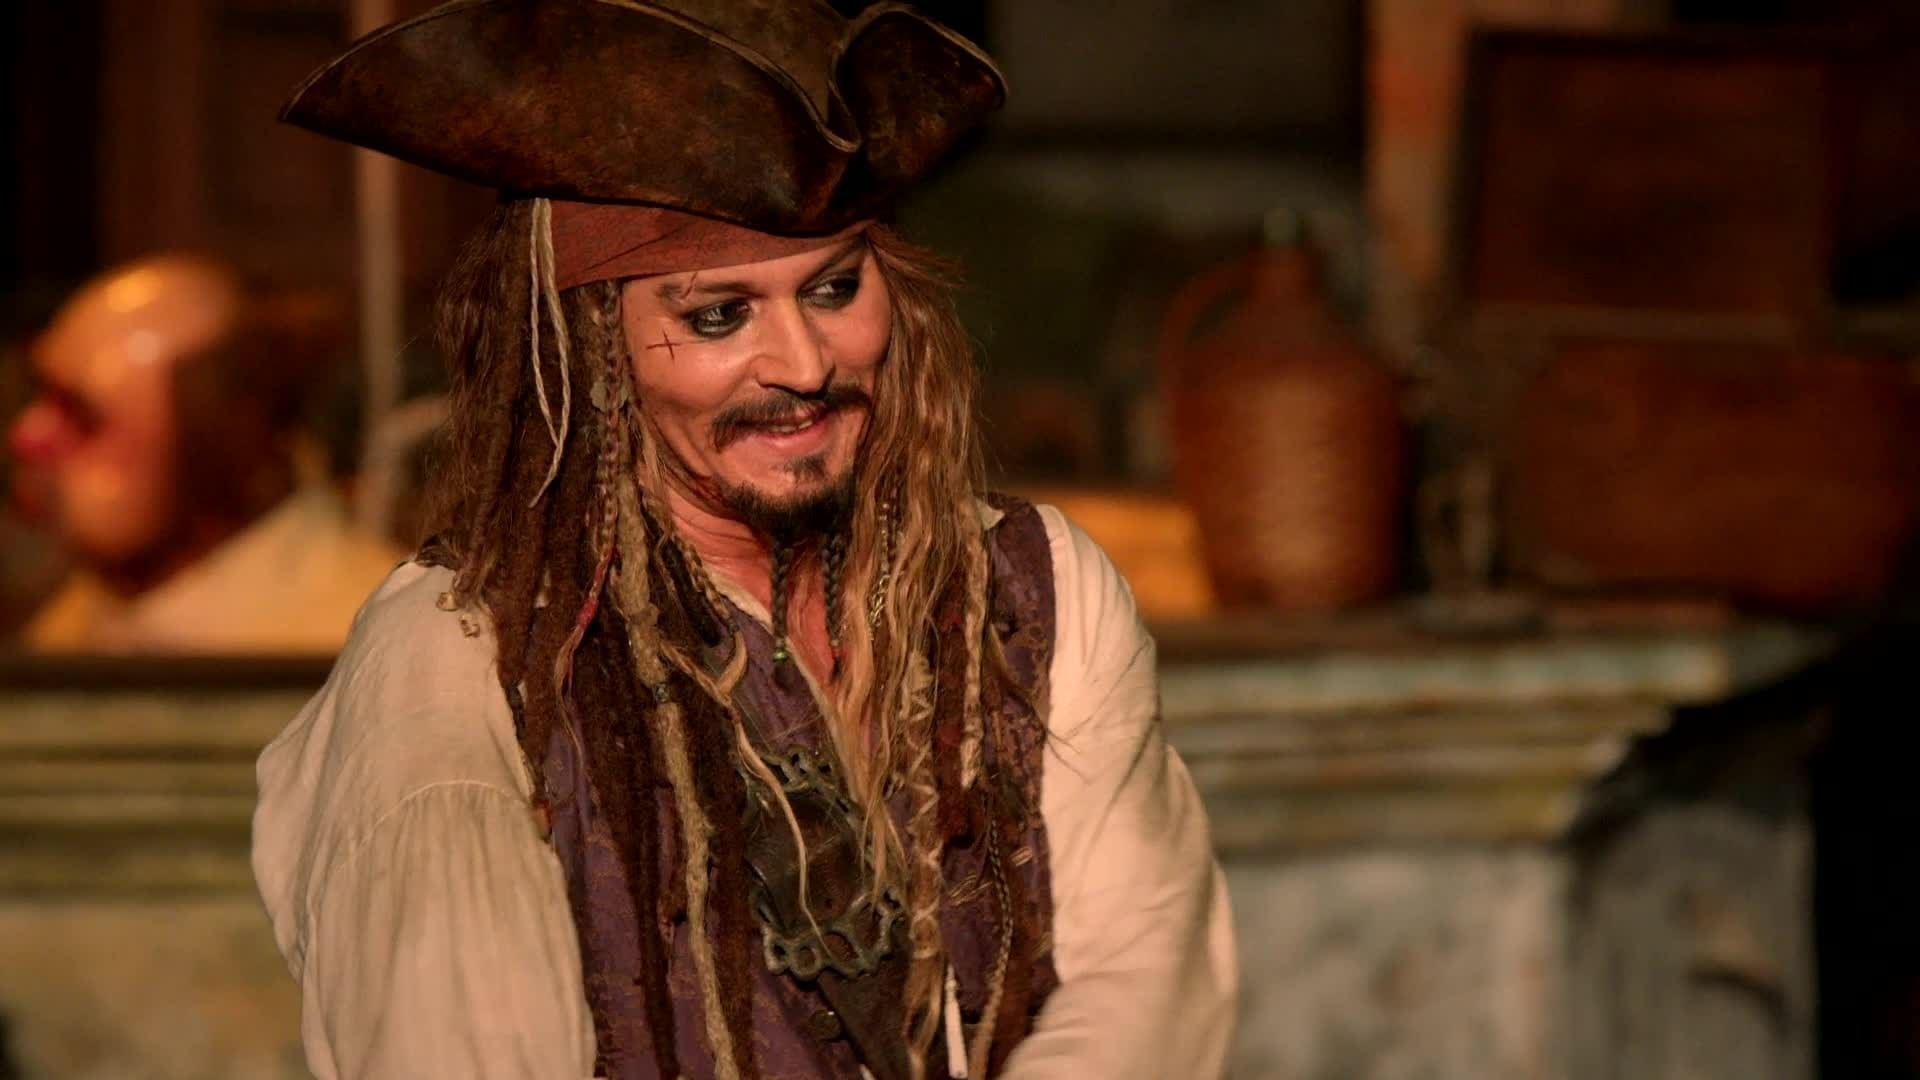 Johnny Depp Surprises Fans At Disneyland